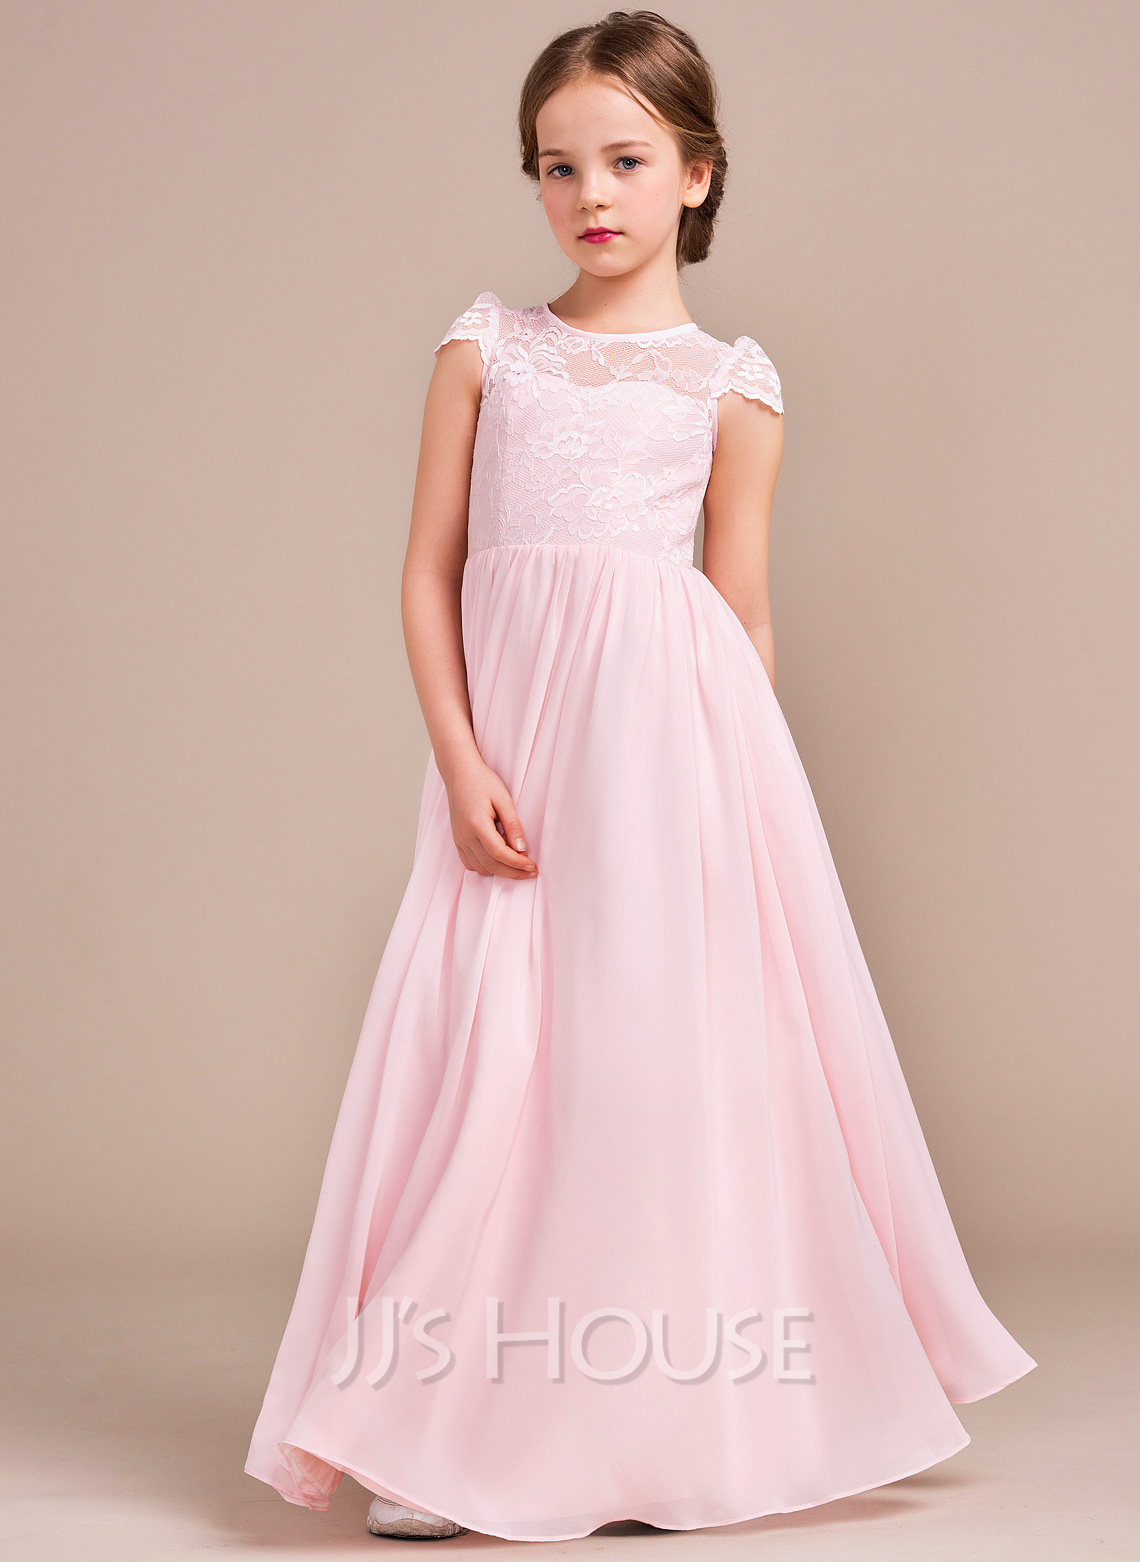 Fiesta junior bridesmaid dresses wedding dresses asian for Discount wedding dresses orlando